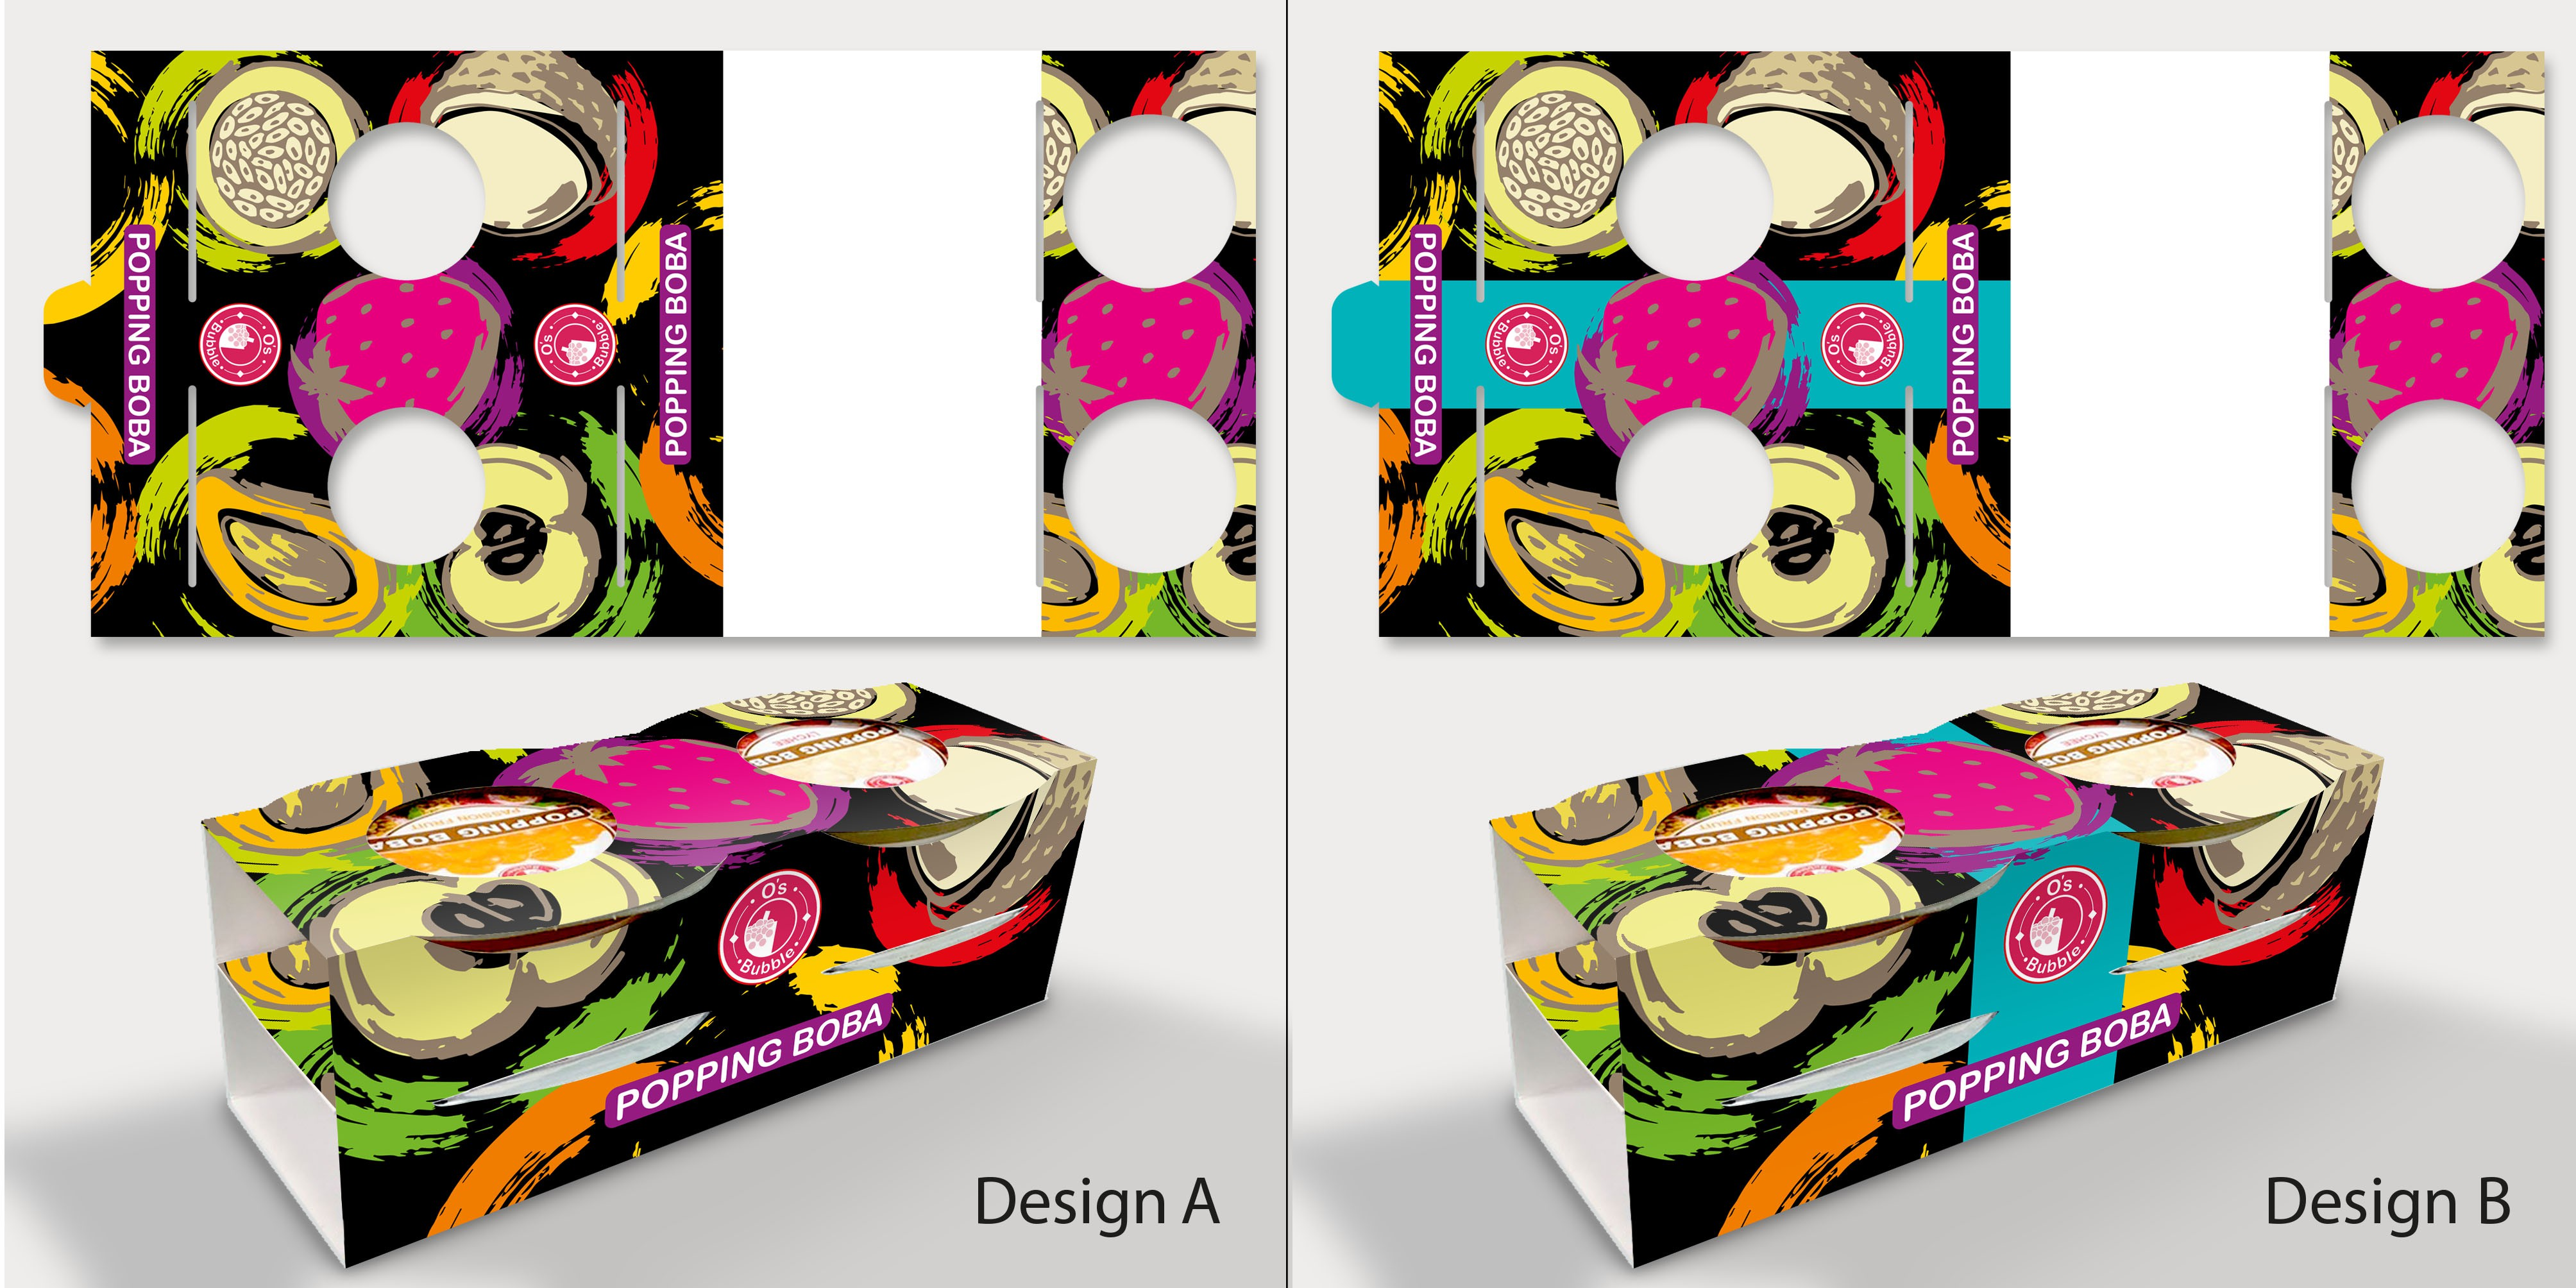 Popping Boba Package Design